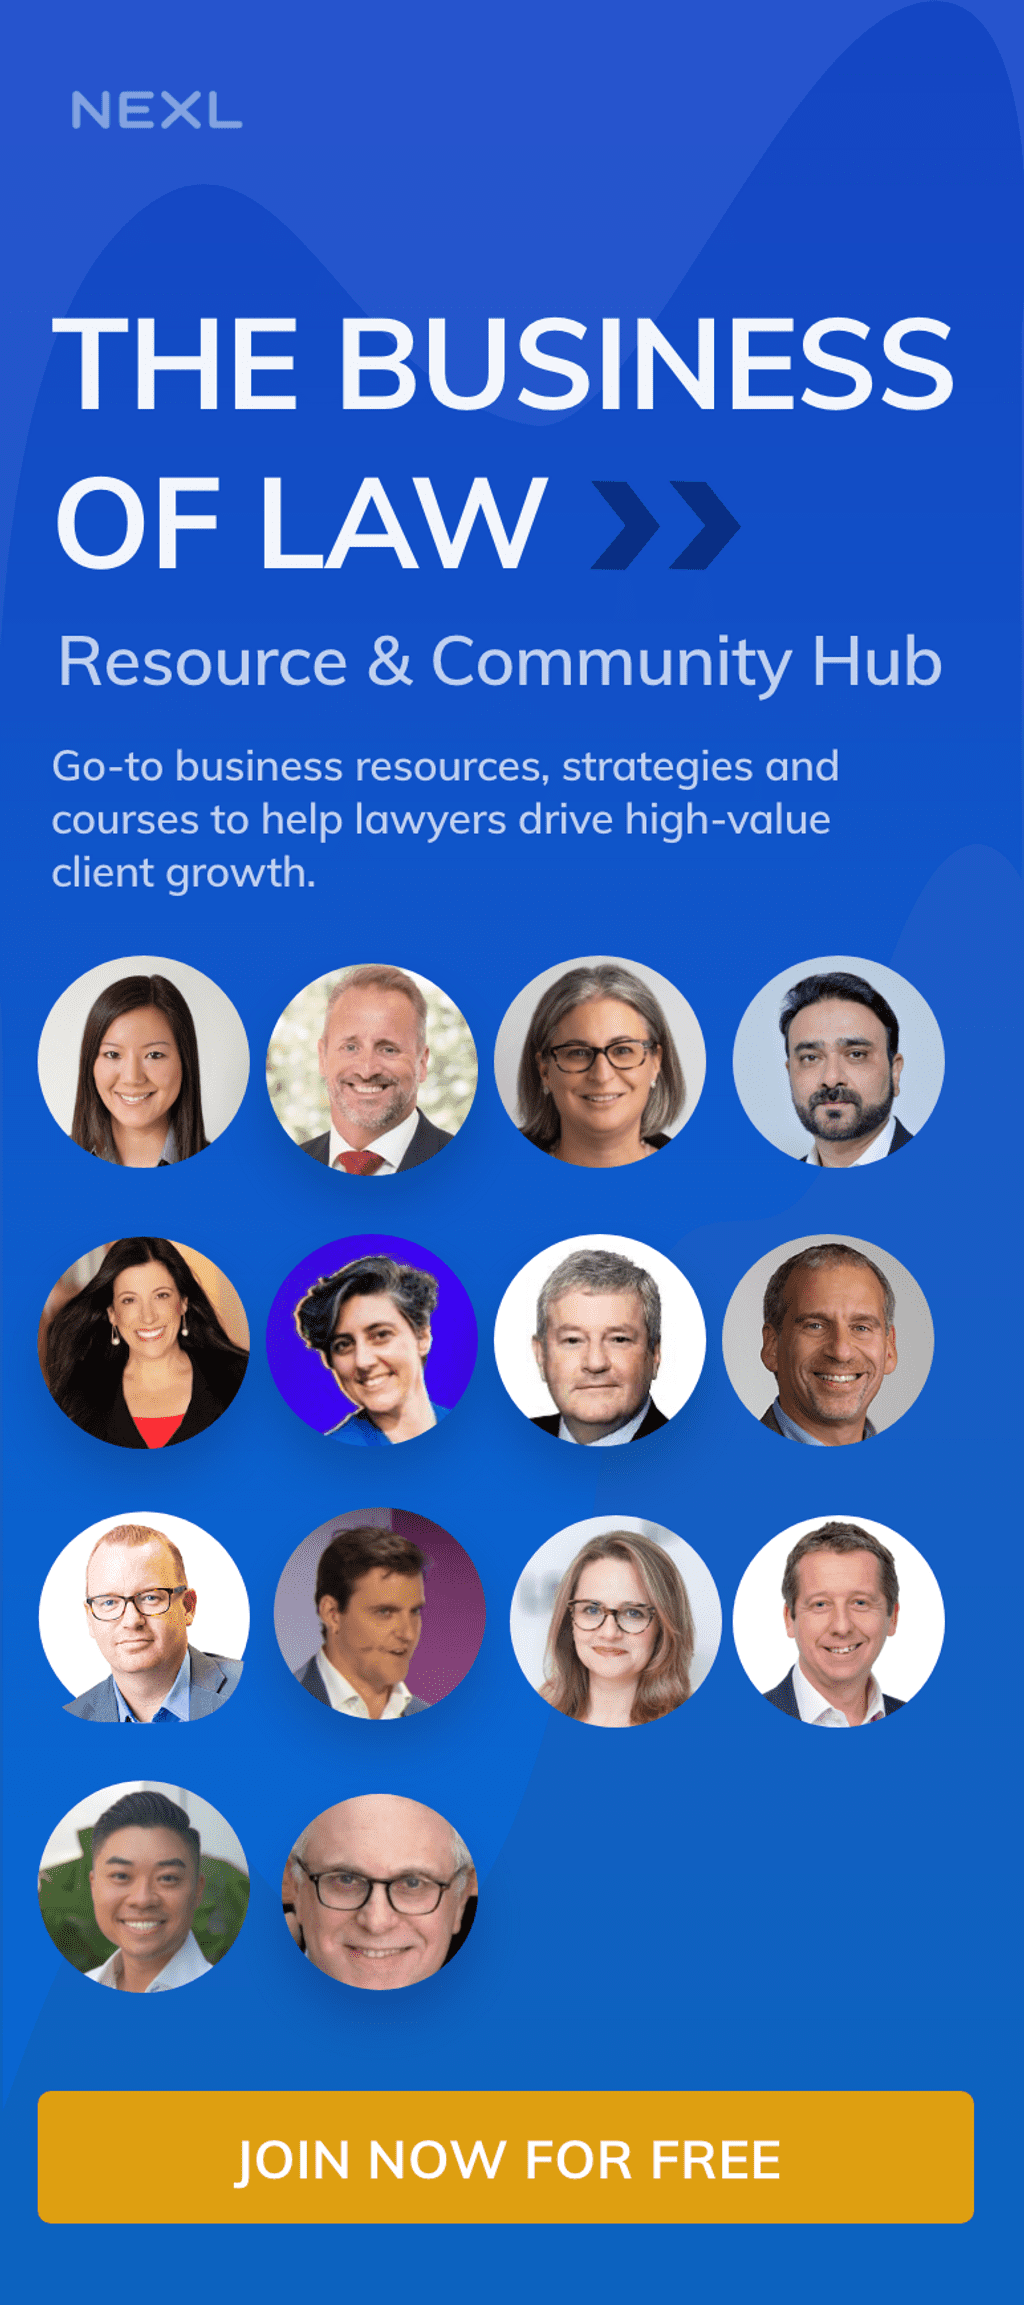 BUSINESS OF LAW RESOURCE HUB IS LIVE